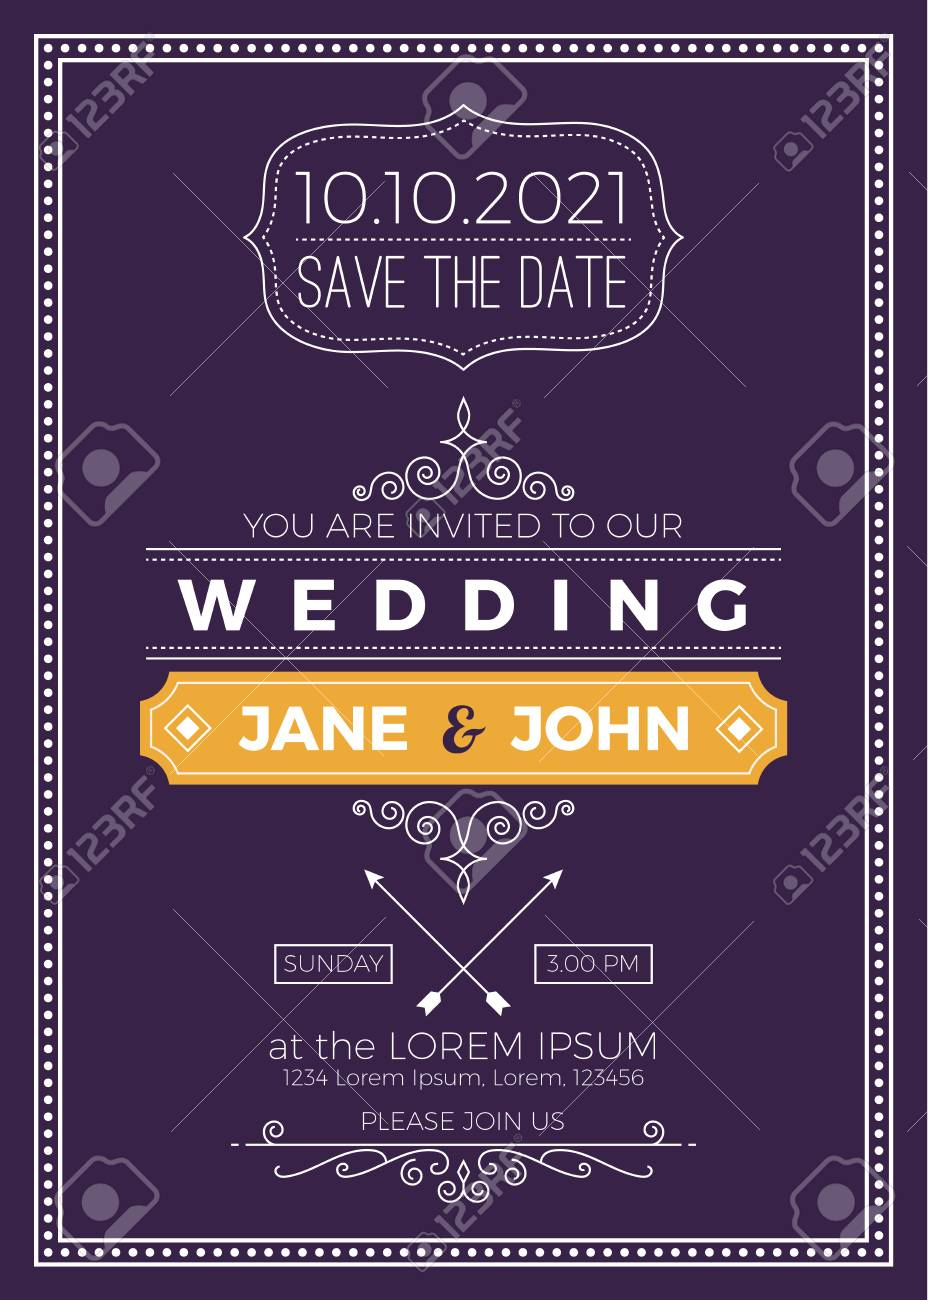 Vintage Wedding Invitation Card A5 Size Frame Layout Print Template